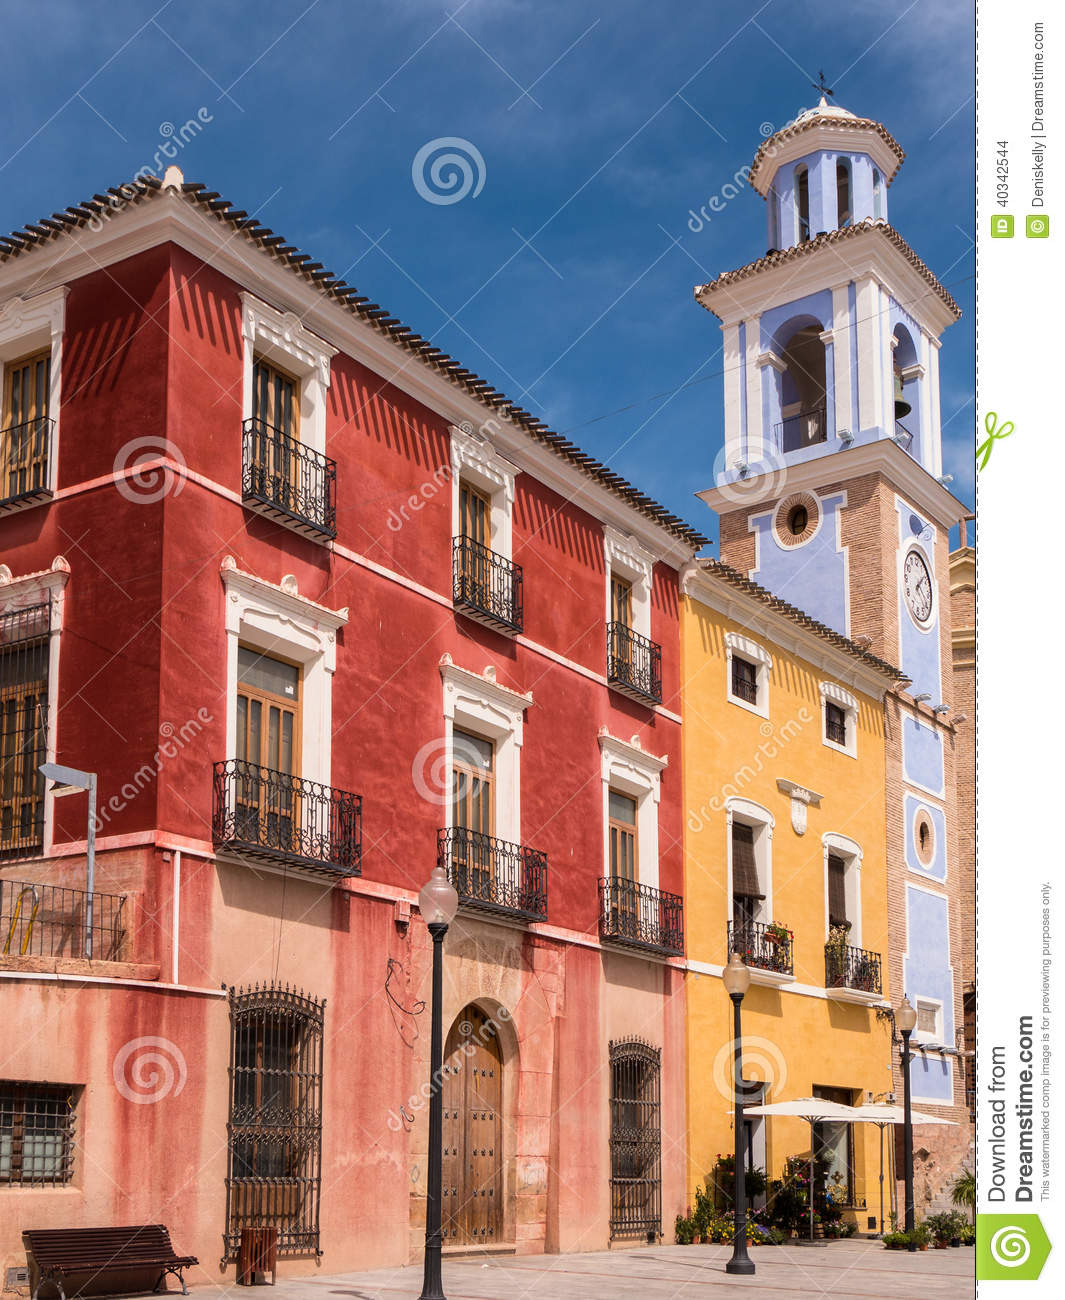 Colourful Historic Buildings in Mula, Spain